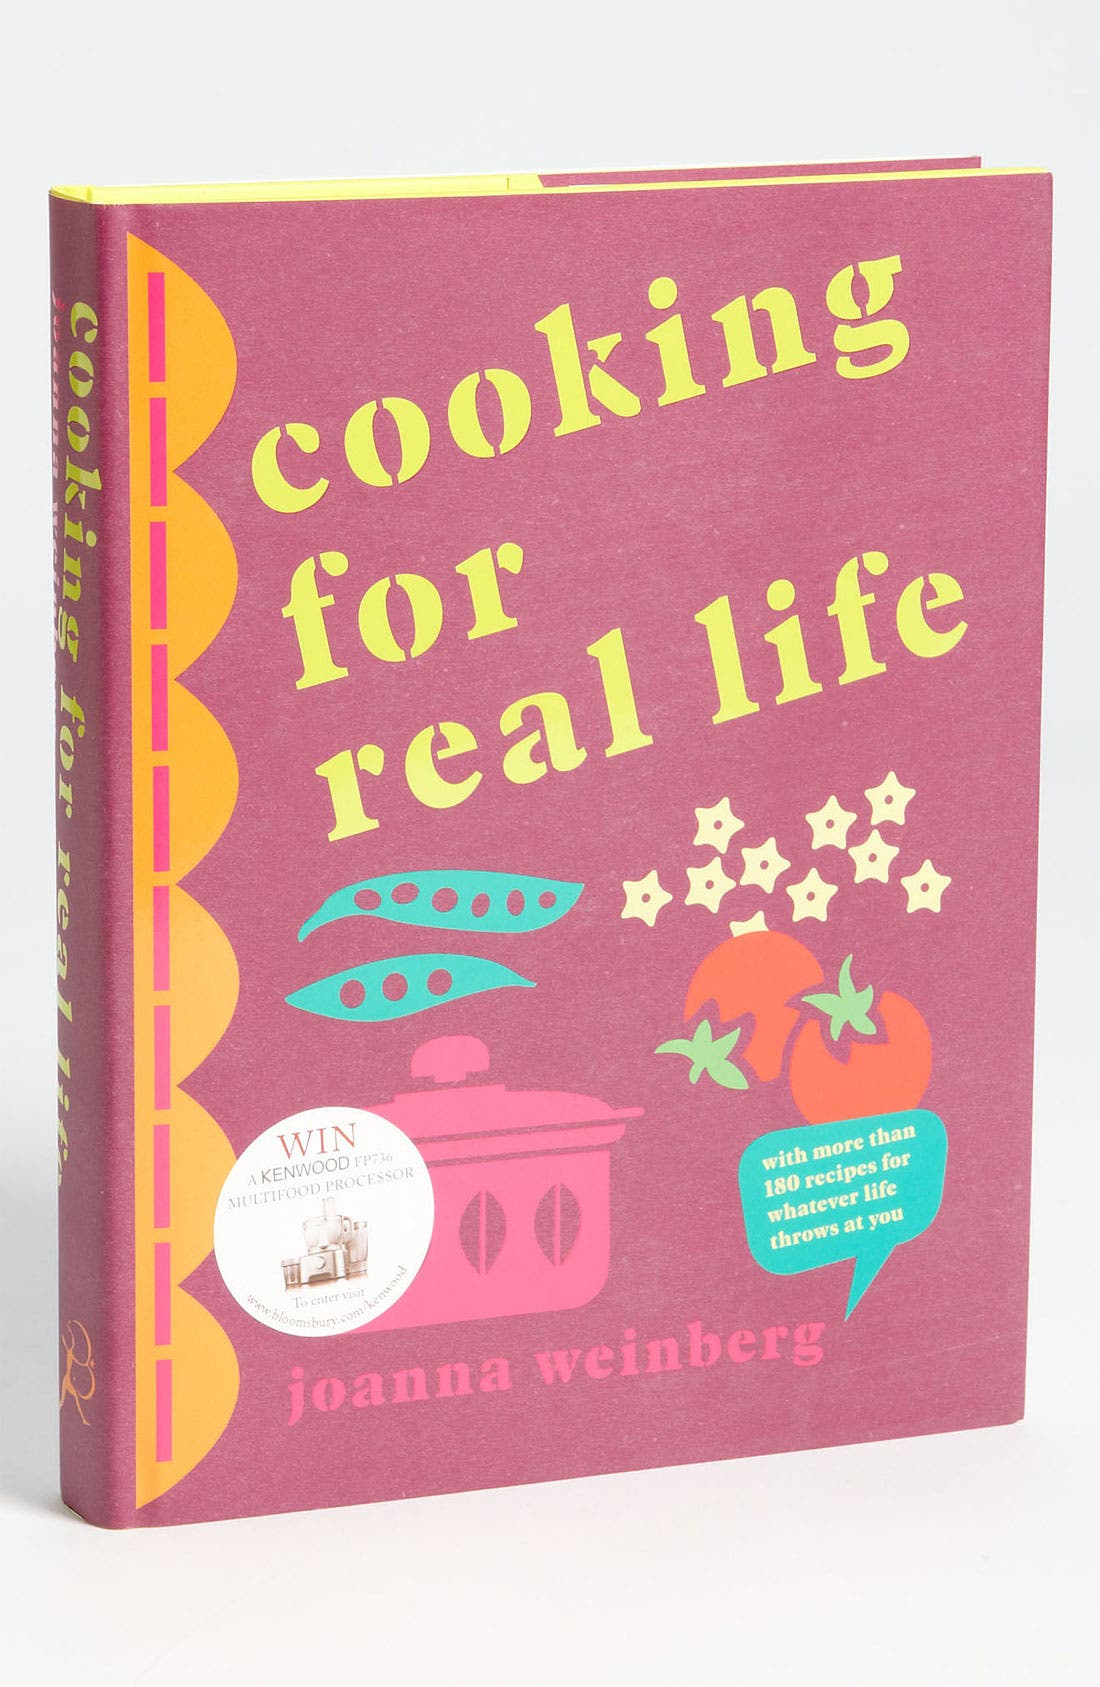 Alternate Image 1 Selected - 'Cooking for Real Life' Cookbook